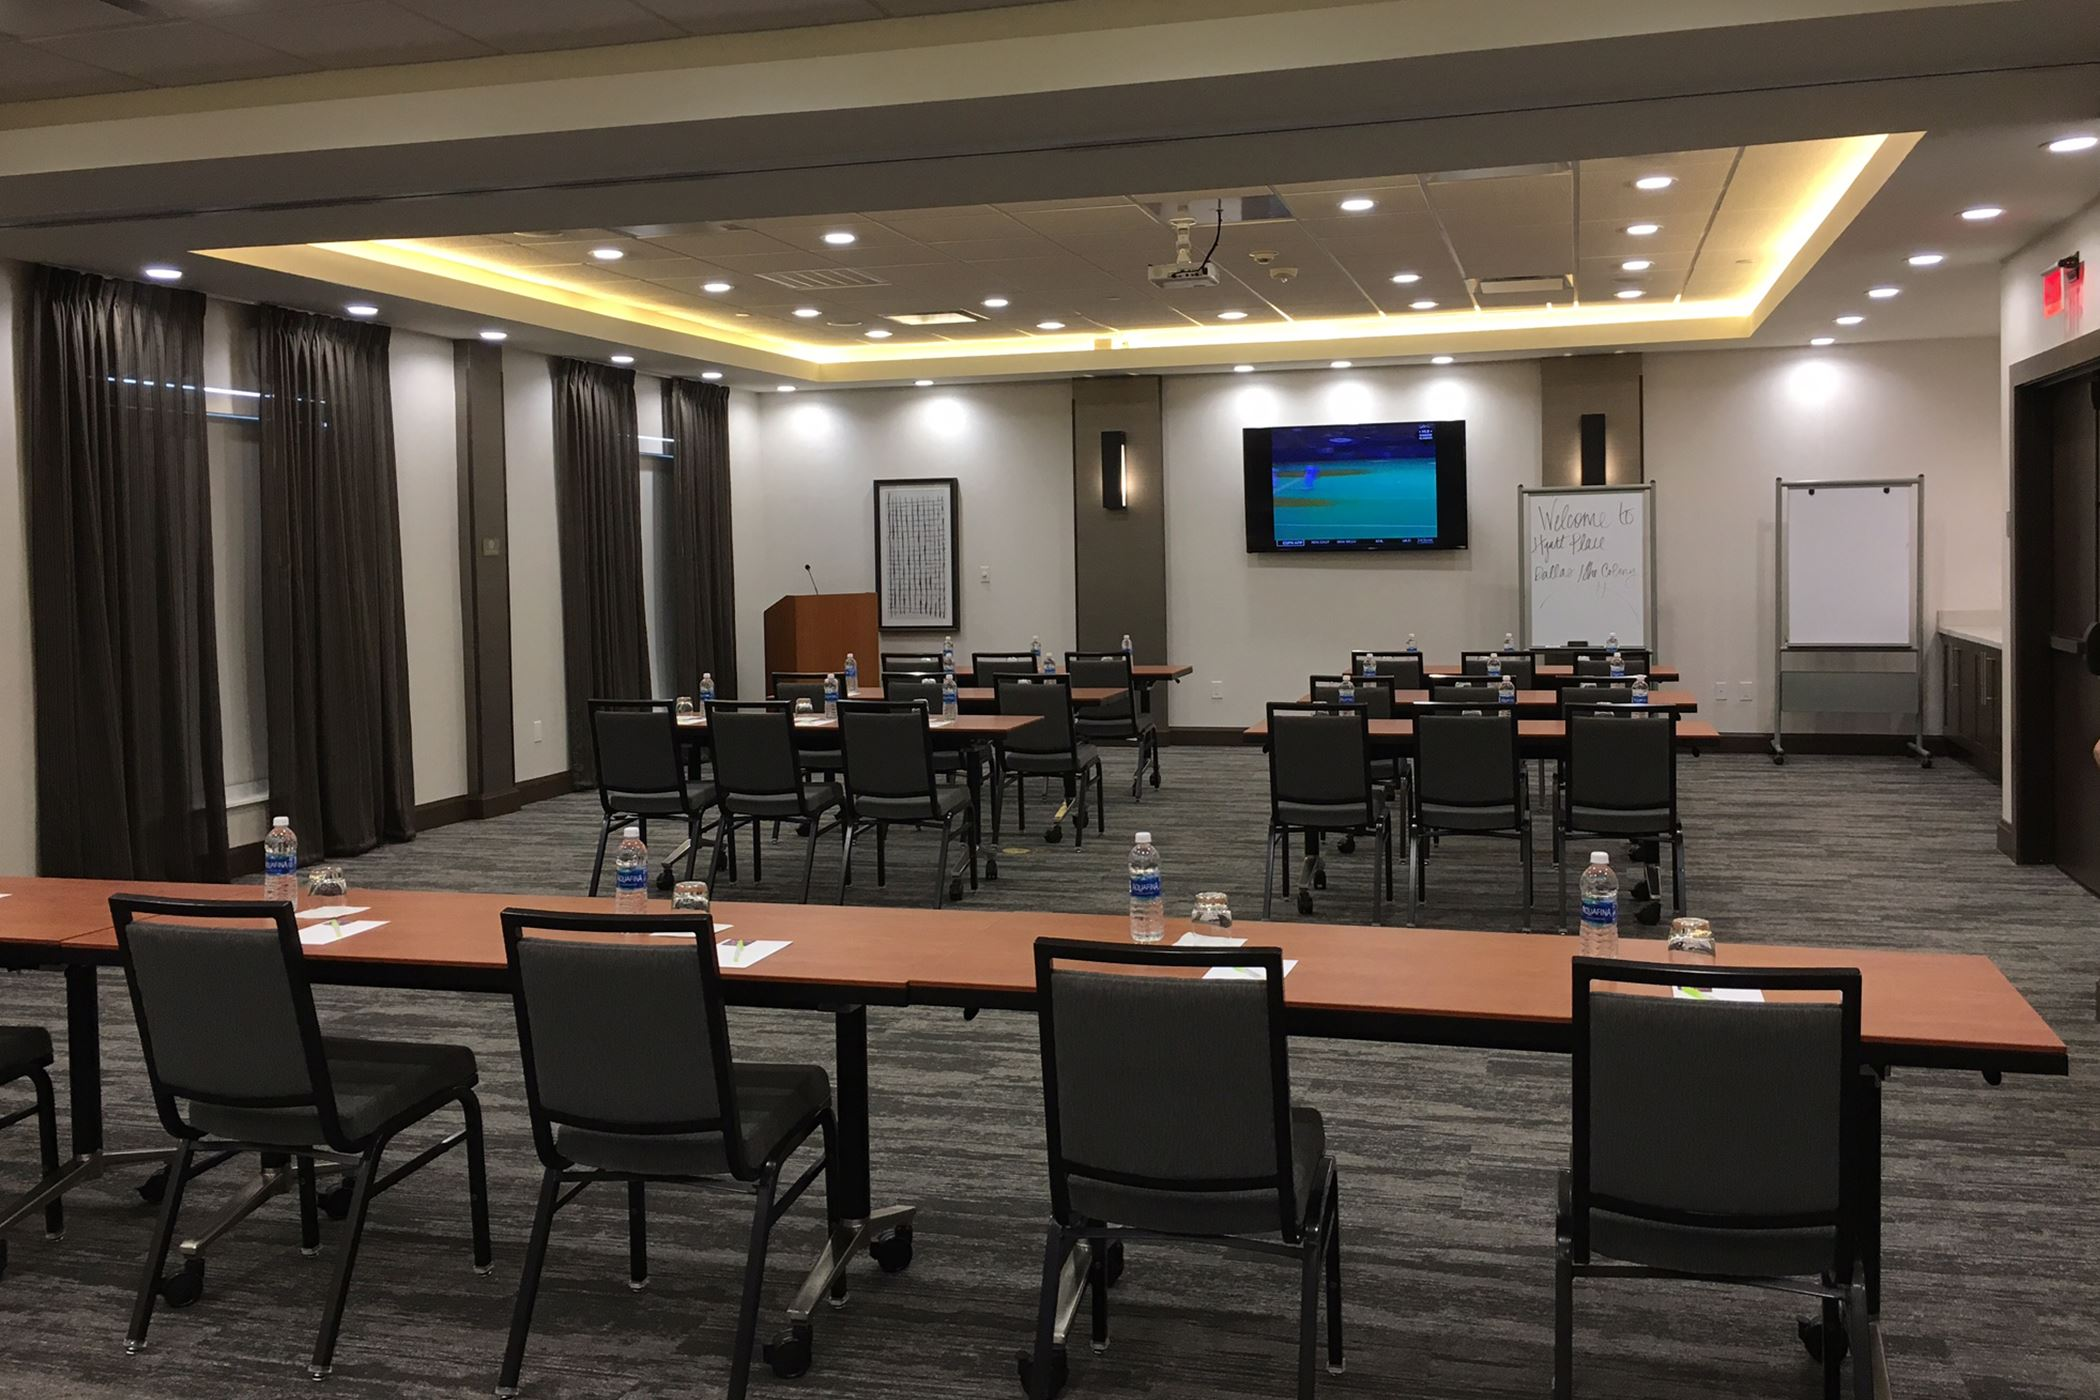 Hyatt Place - meeting room